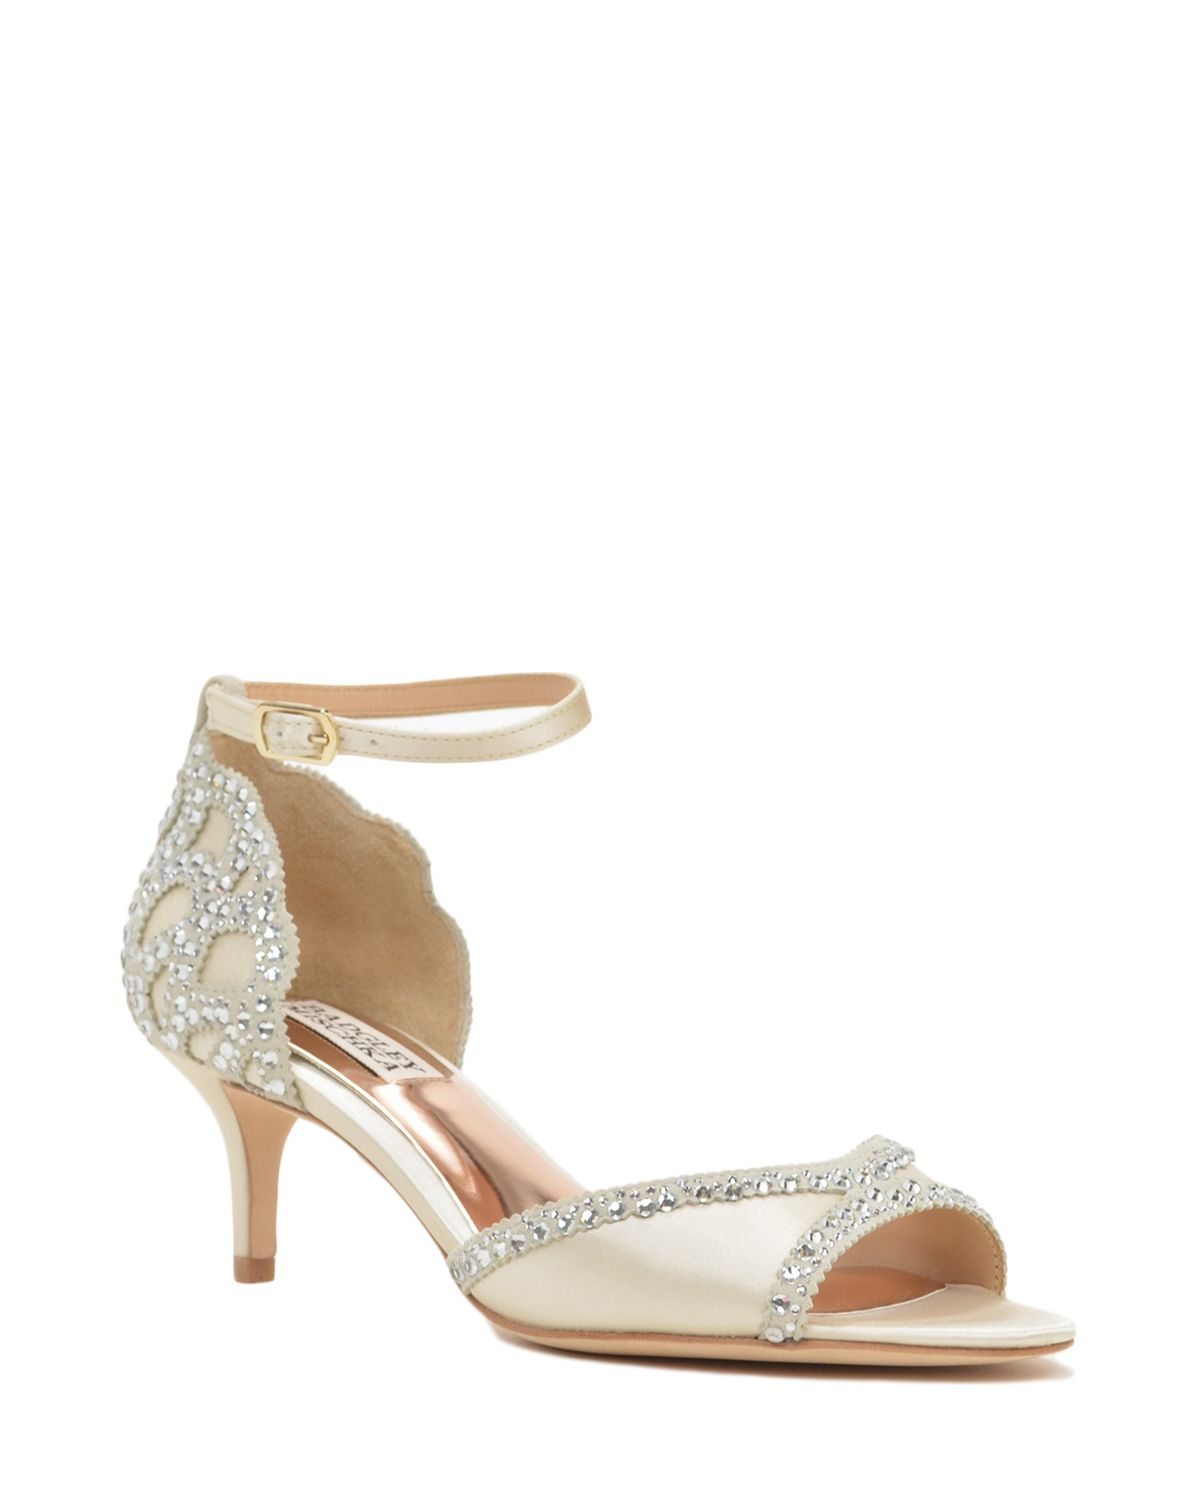 Badgley Mischka Gillian Ankle Strap Evening Shoe Now Available At The Official Website Free